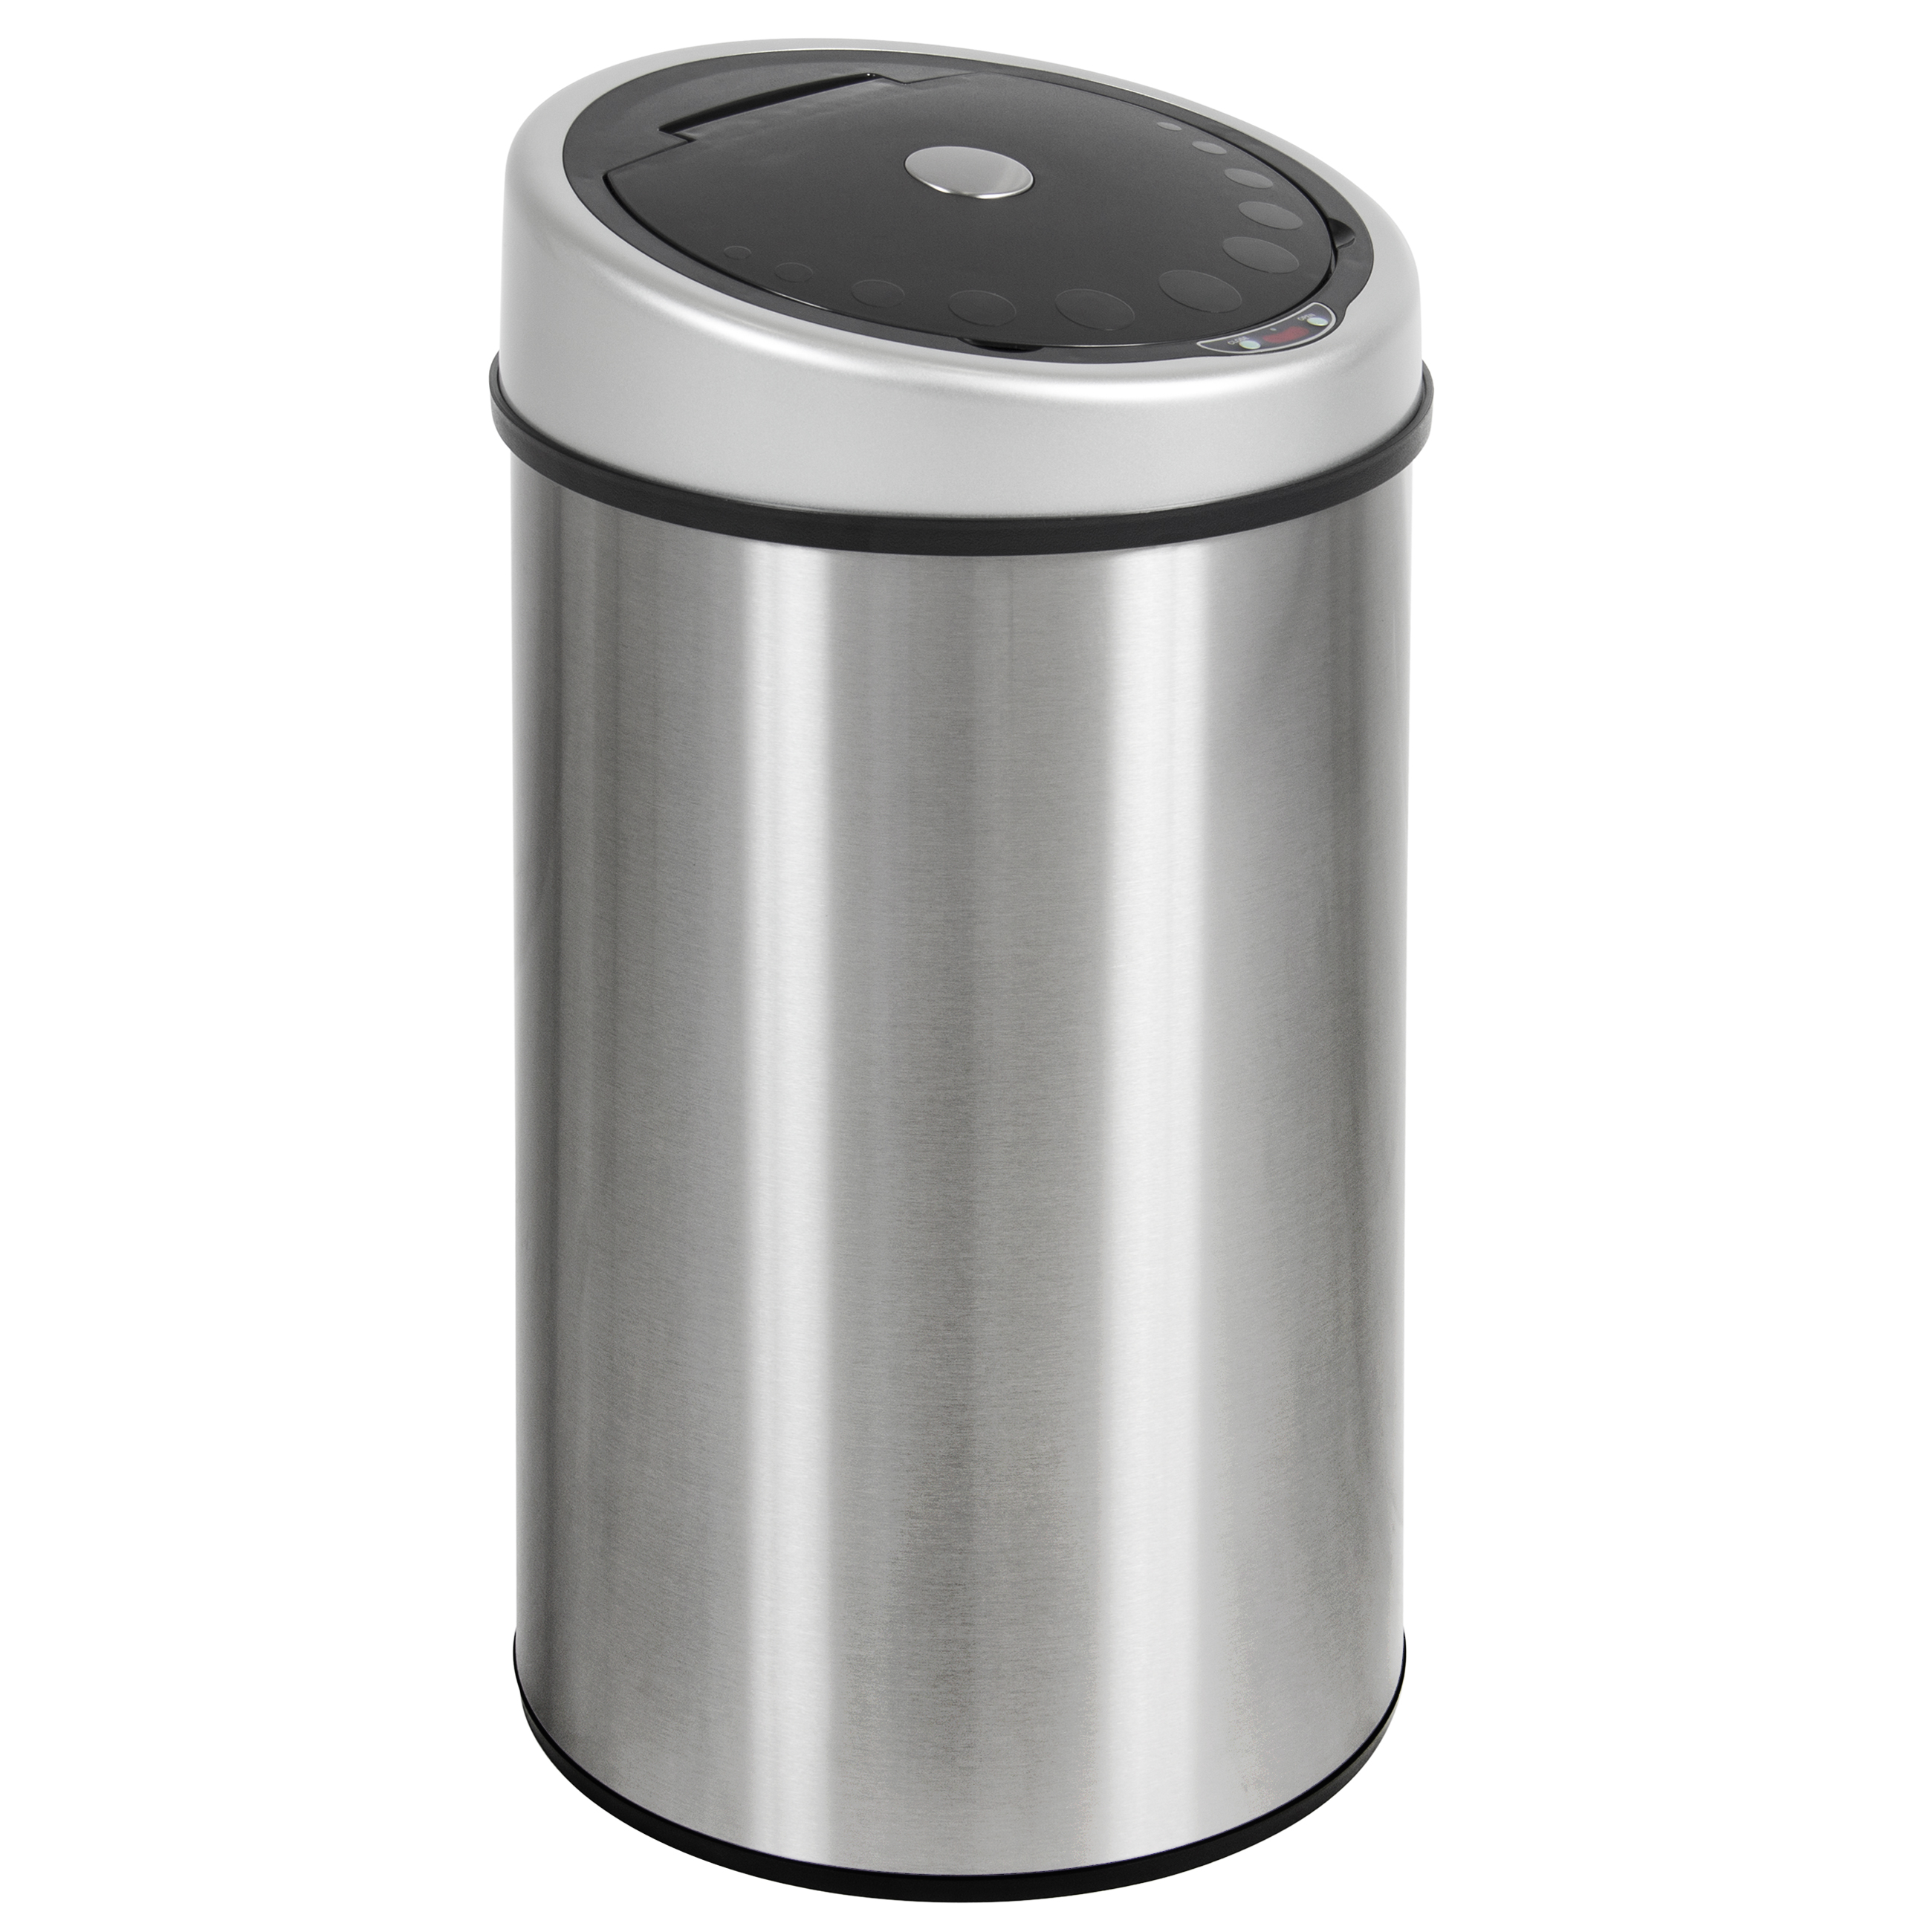 Click here to buy Automatic Touchless Trash Can Stainless Steel Infrared sensor dust bin 13.2 Gal.